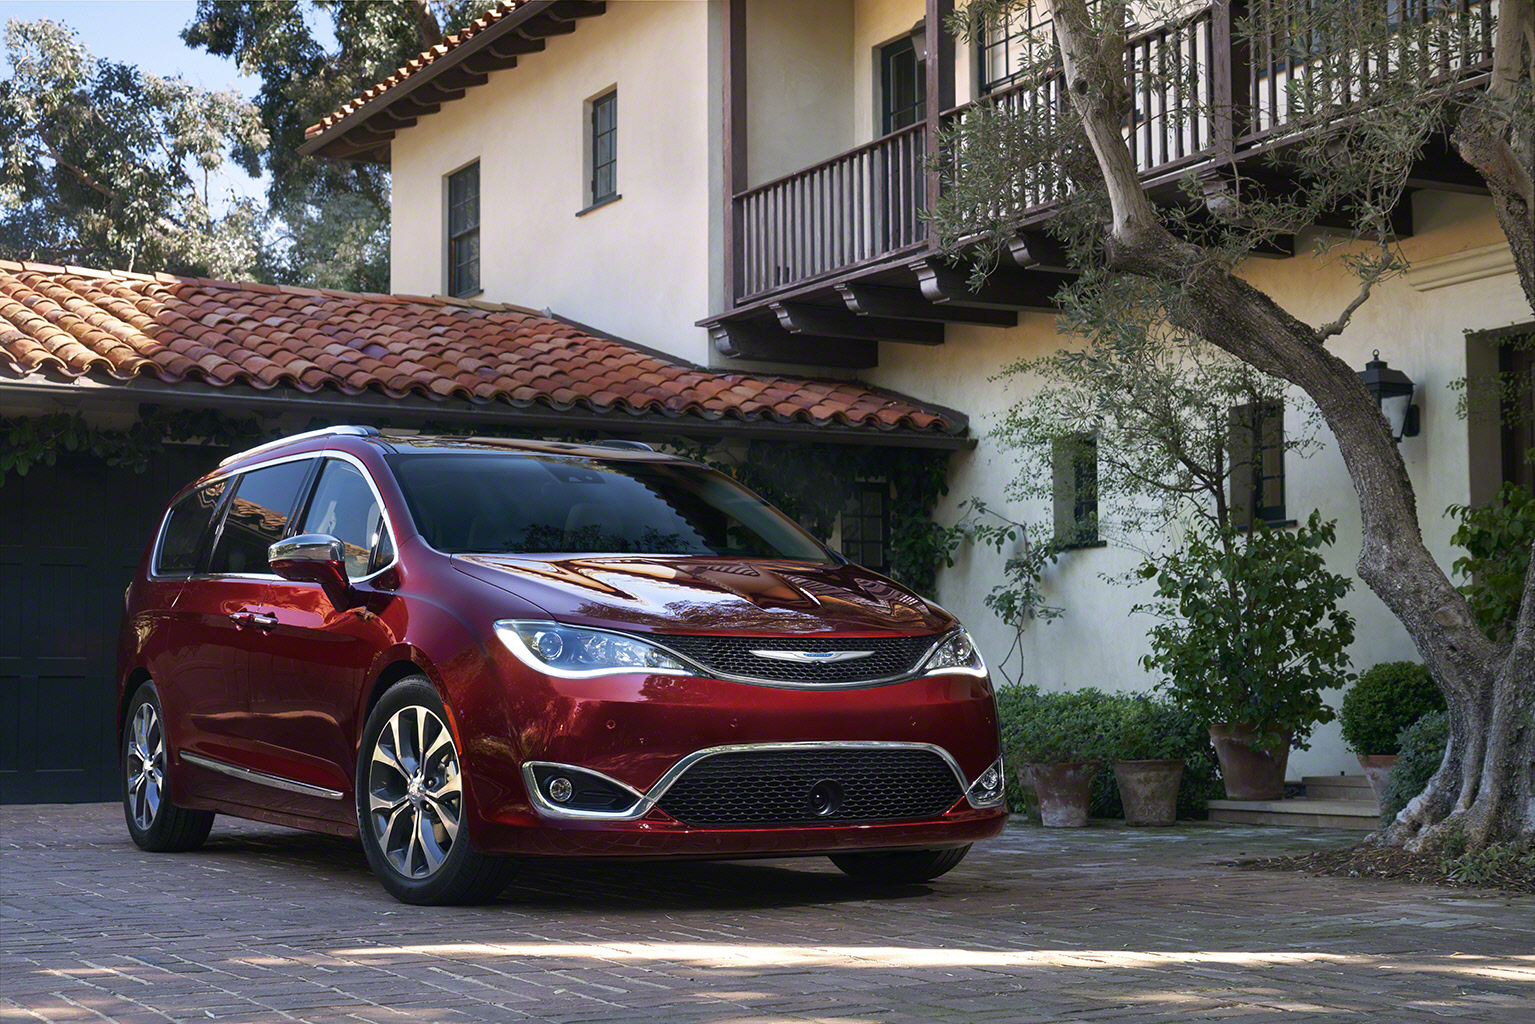 Chrysler Pacifica Recalled To Address Seat Belt Issue Sep 21 2017